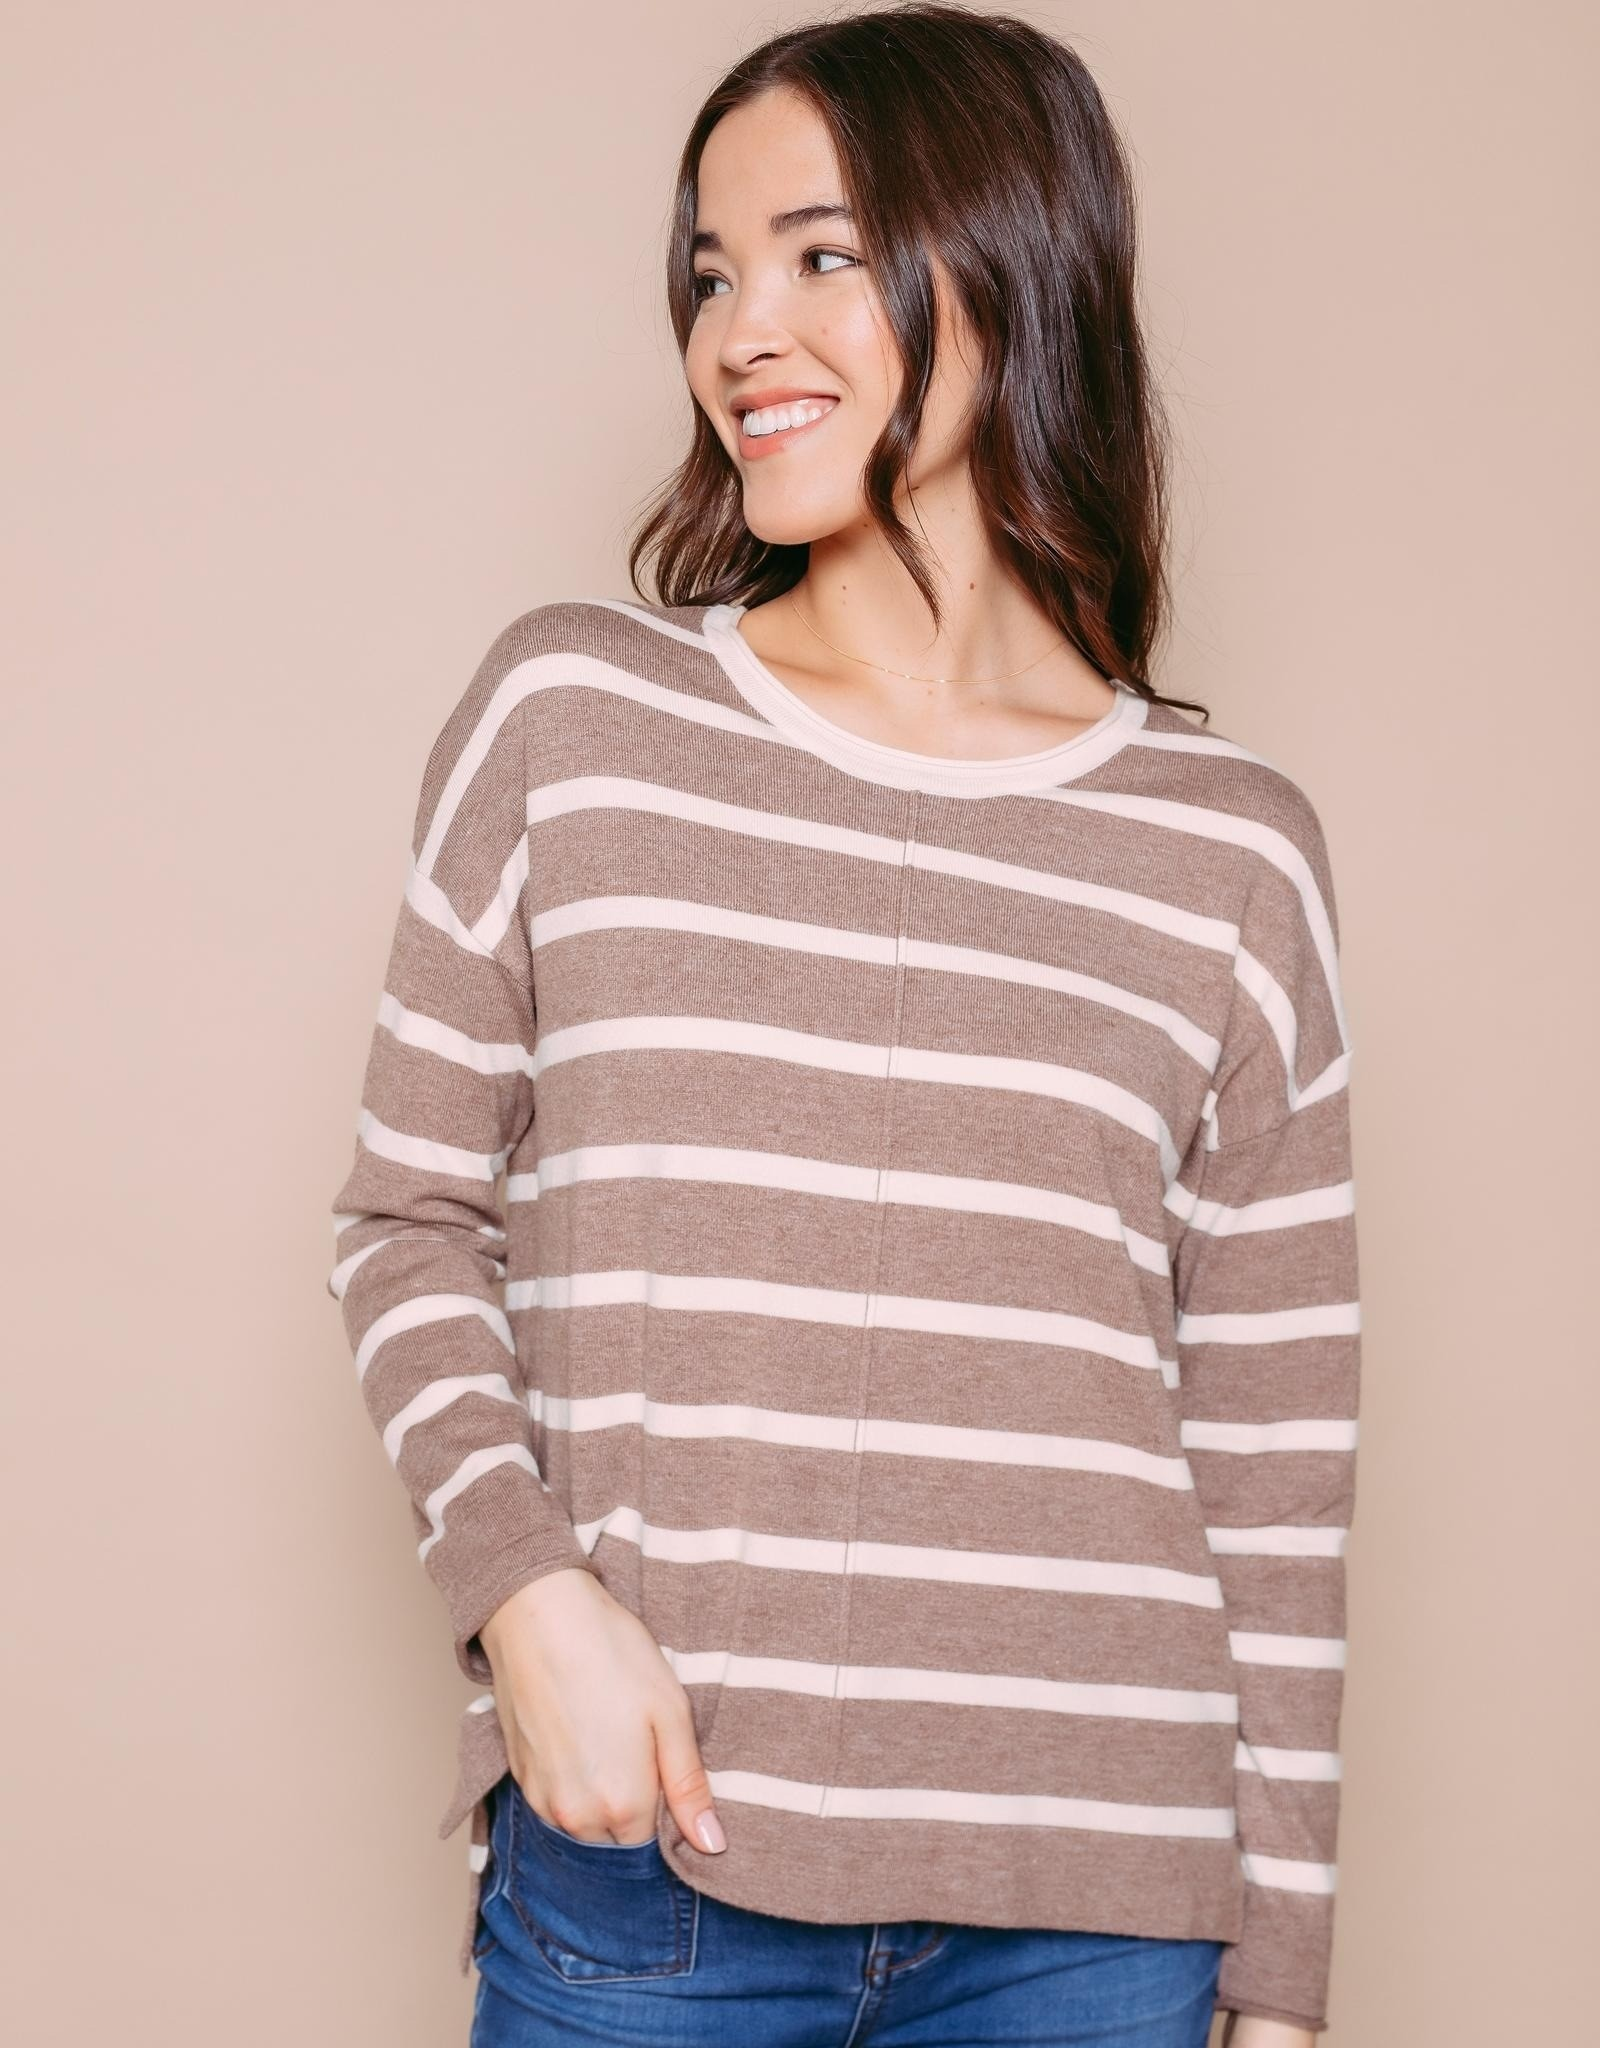 Orb Clothing Paige Pullover